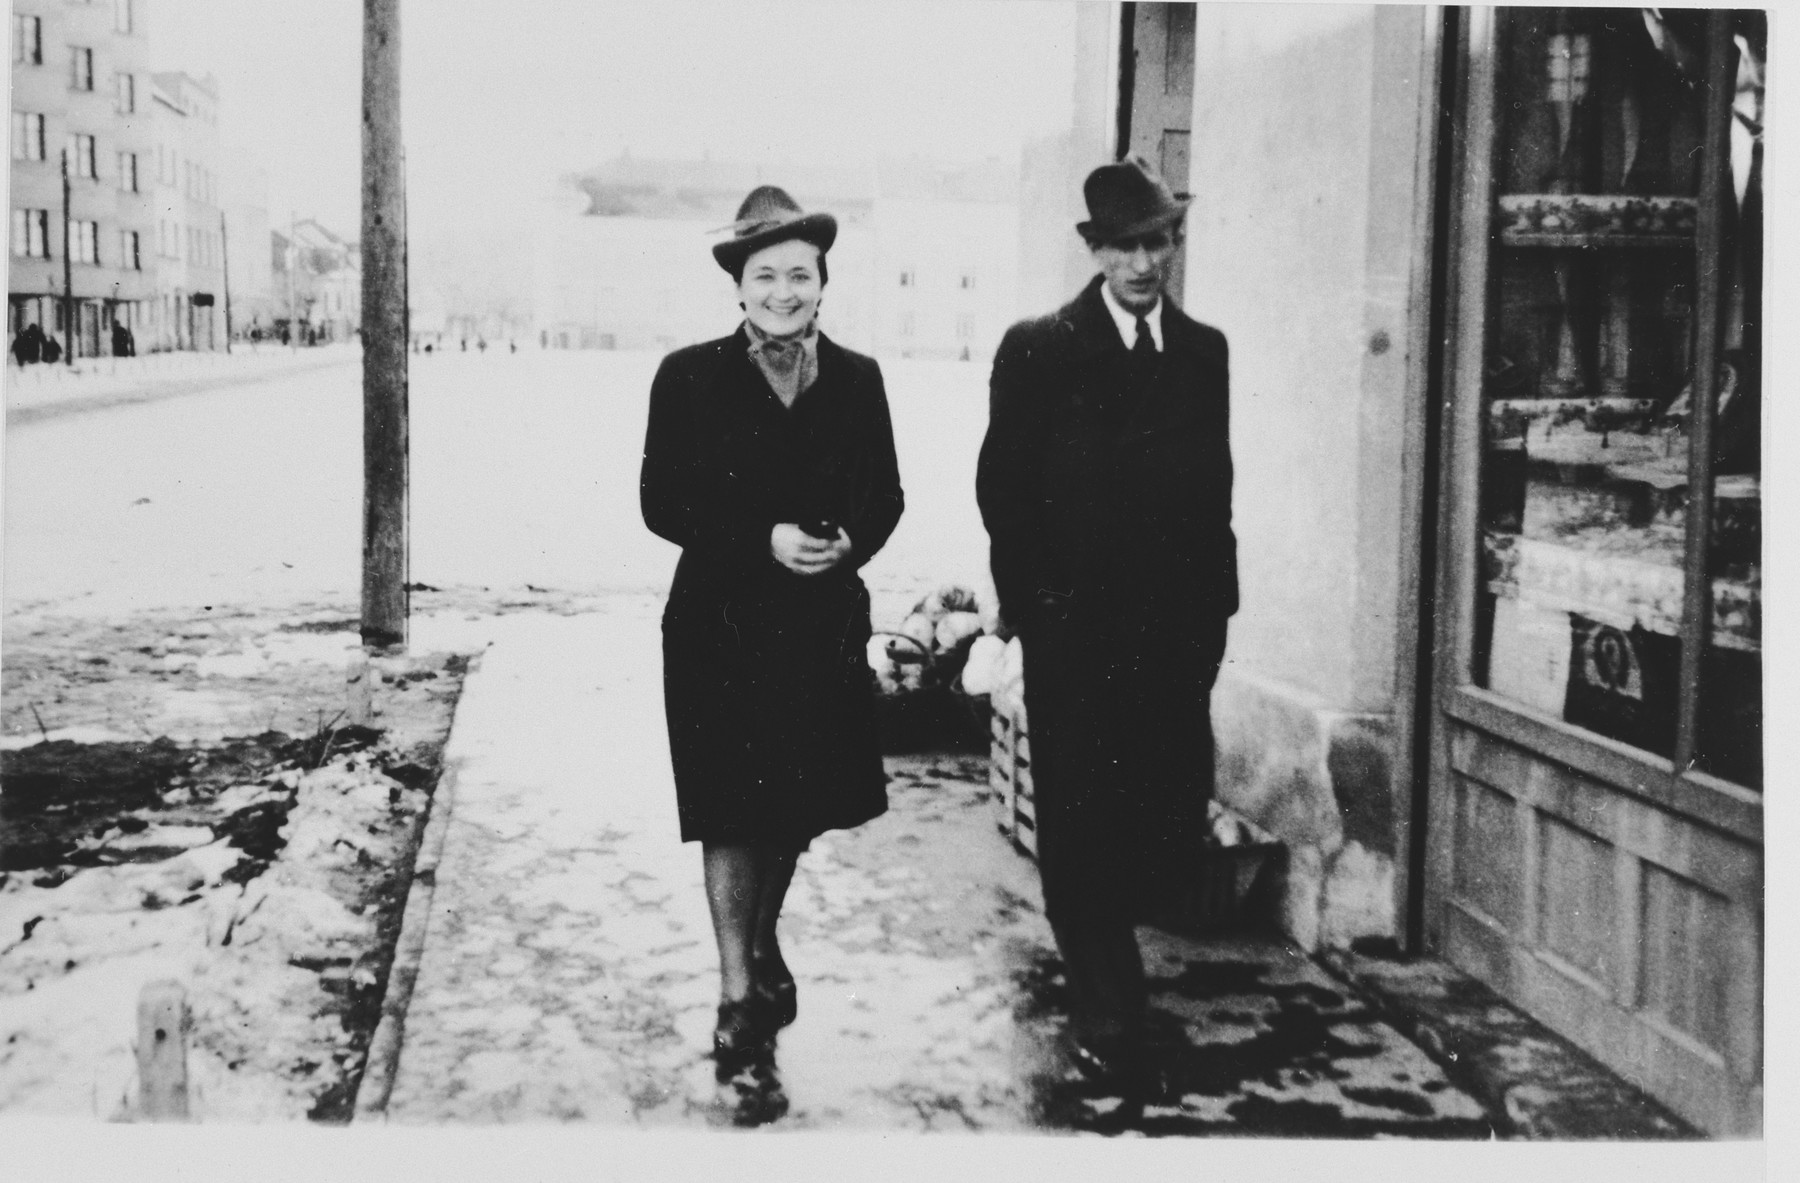 A couple walks down a street in Novi Sad, Yugoslavia.  Pictured at left is Bosiljka Kapor, who joined the Yugoslav partisans in 1941.  On June 27, 1942 she was deported to Jasenovac, where she was killed in 1944.